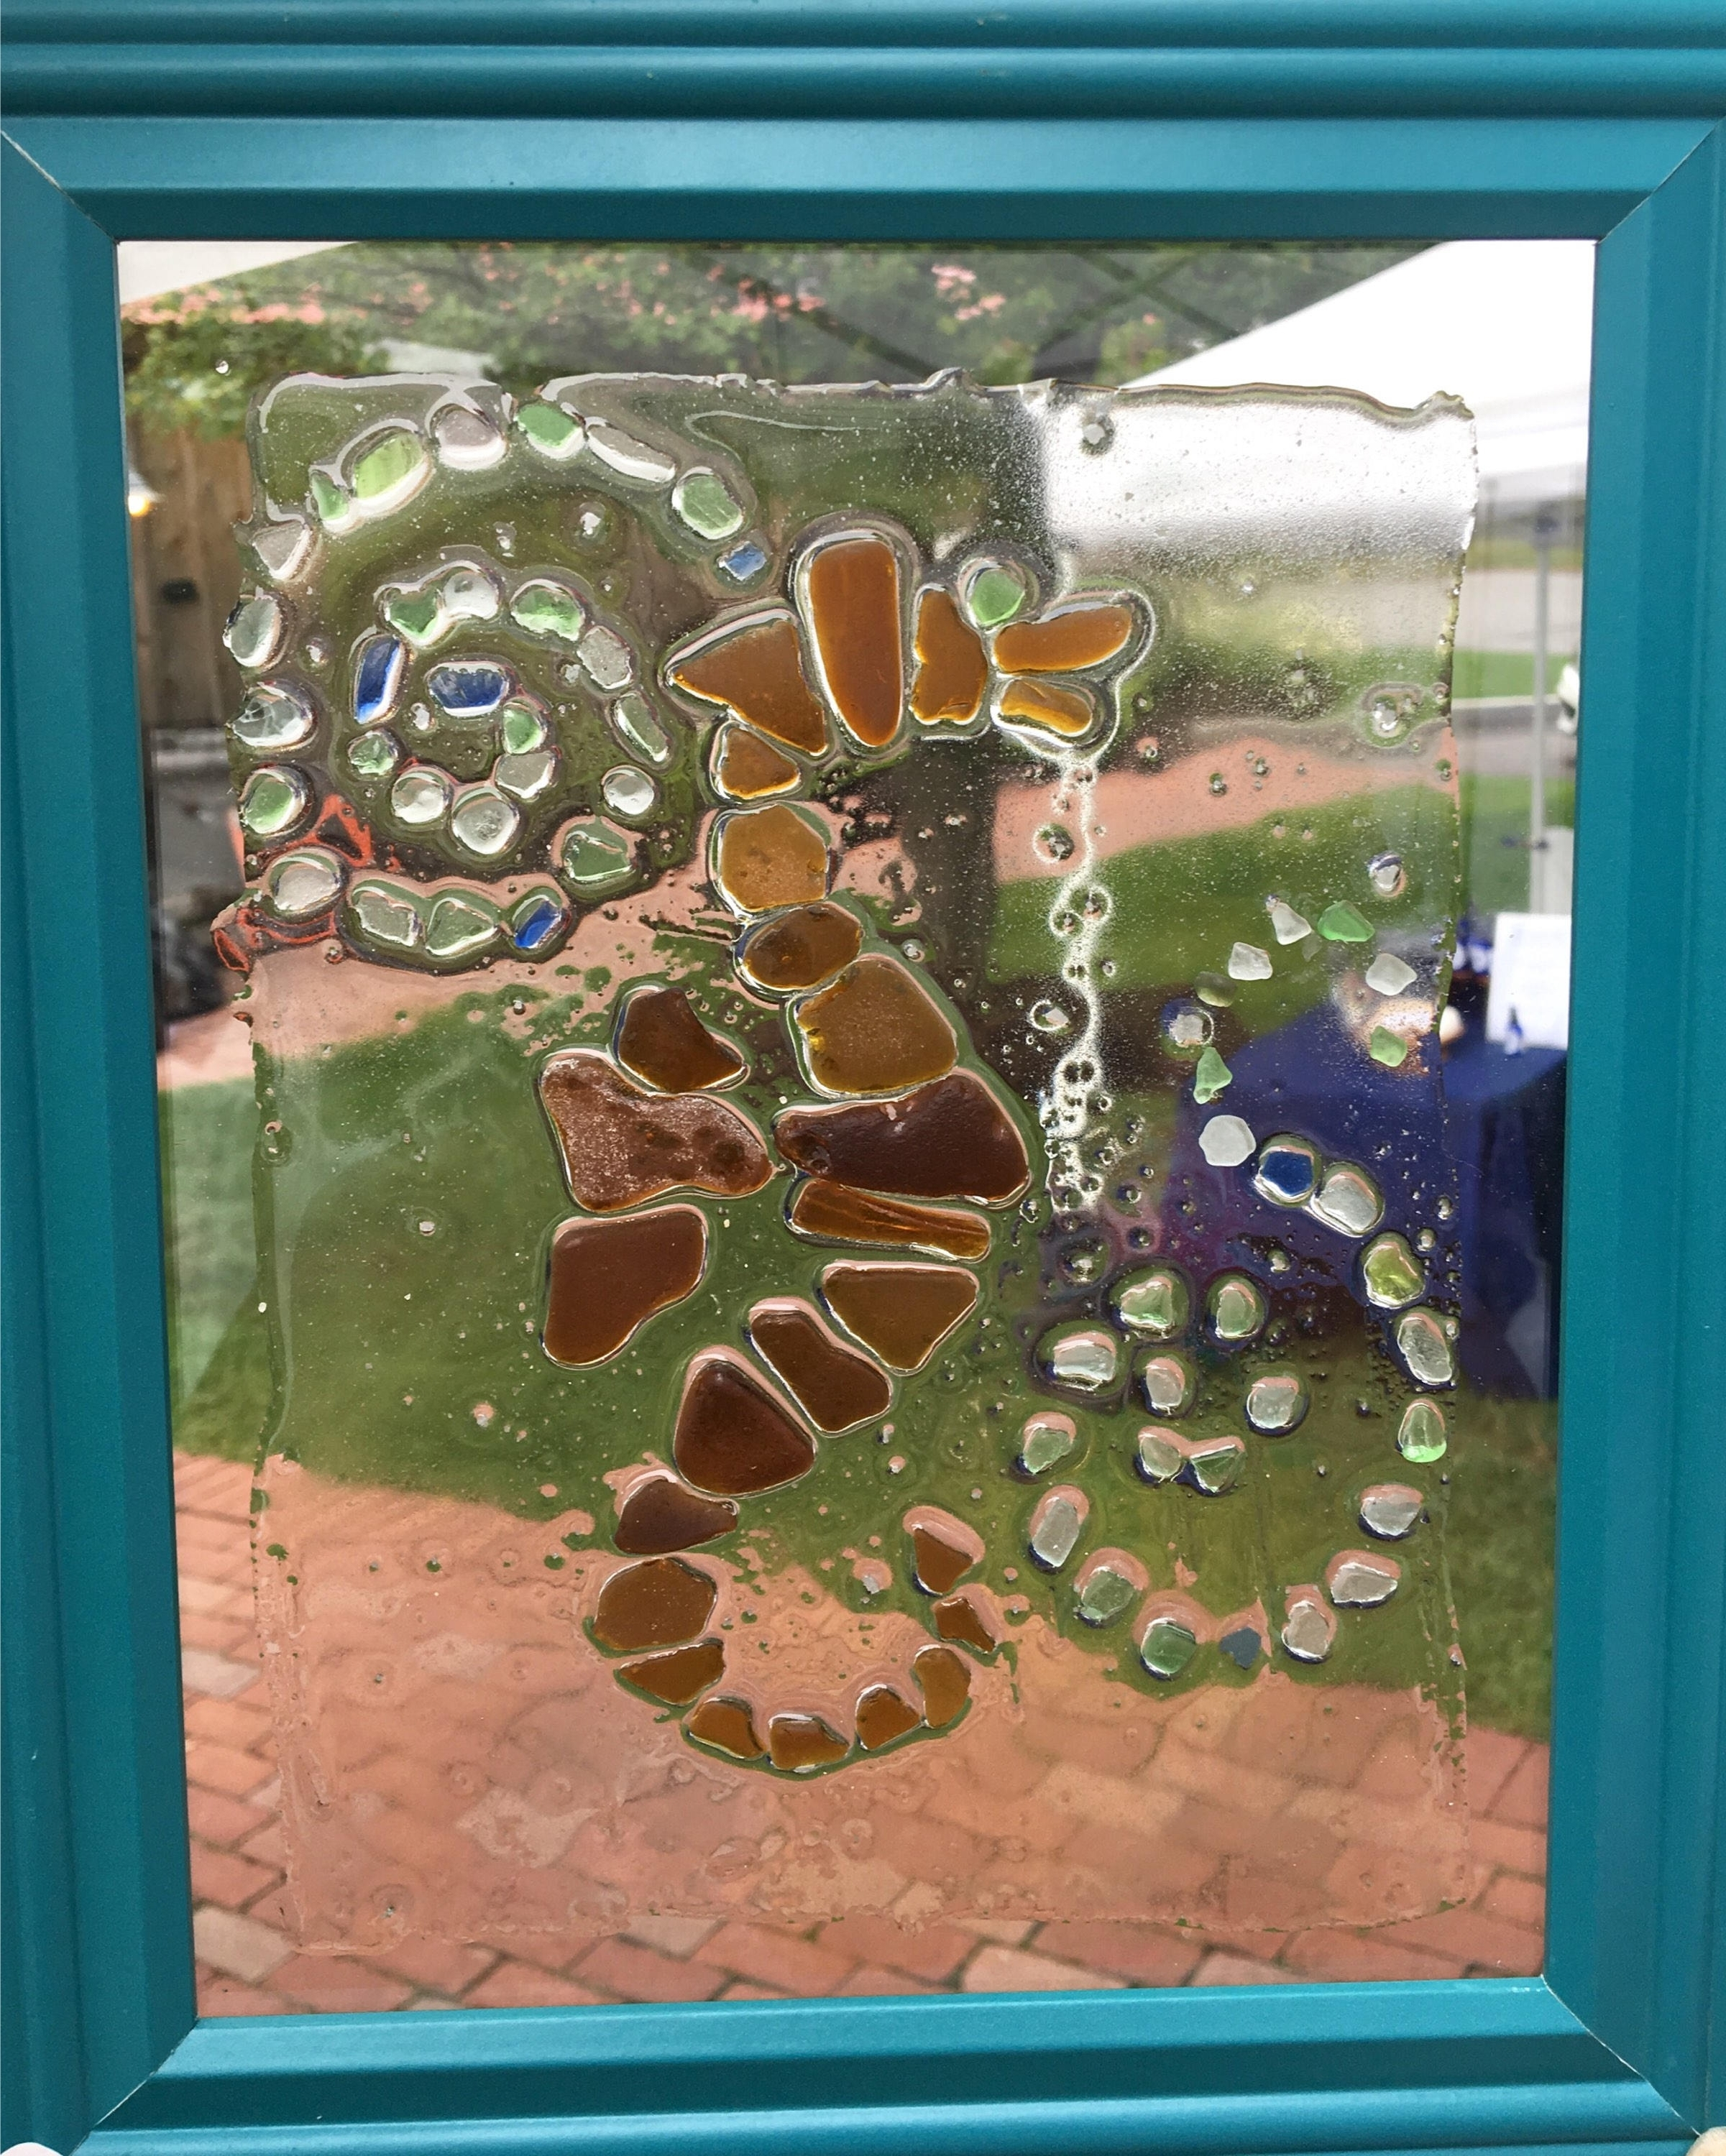 Sea Glass Wall Art Throughout Favorite Sea Glass Wall Art: Seahorse Design Made From Genuine Sea Glass 8X (View 7 of 15)